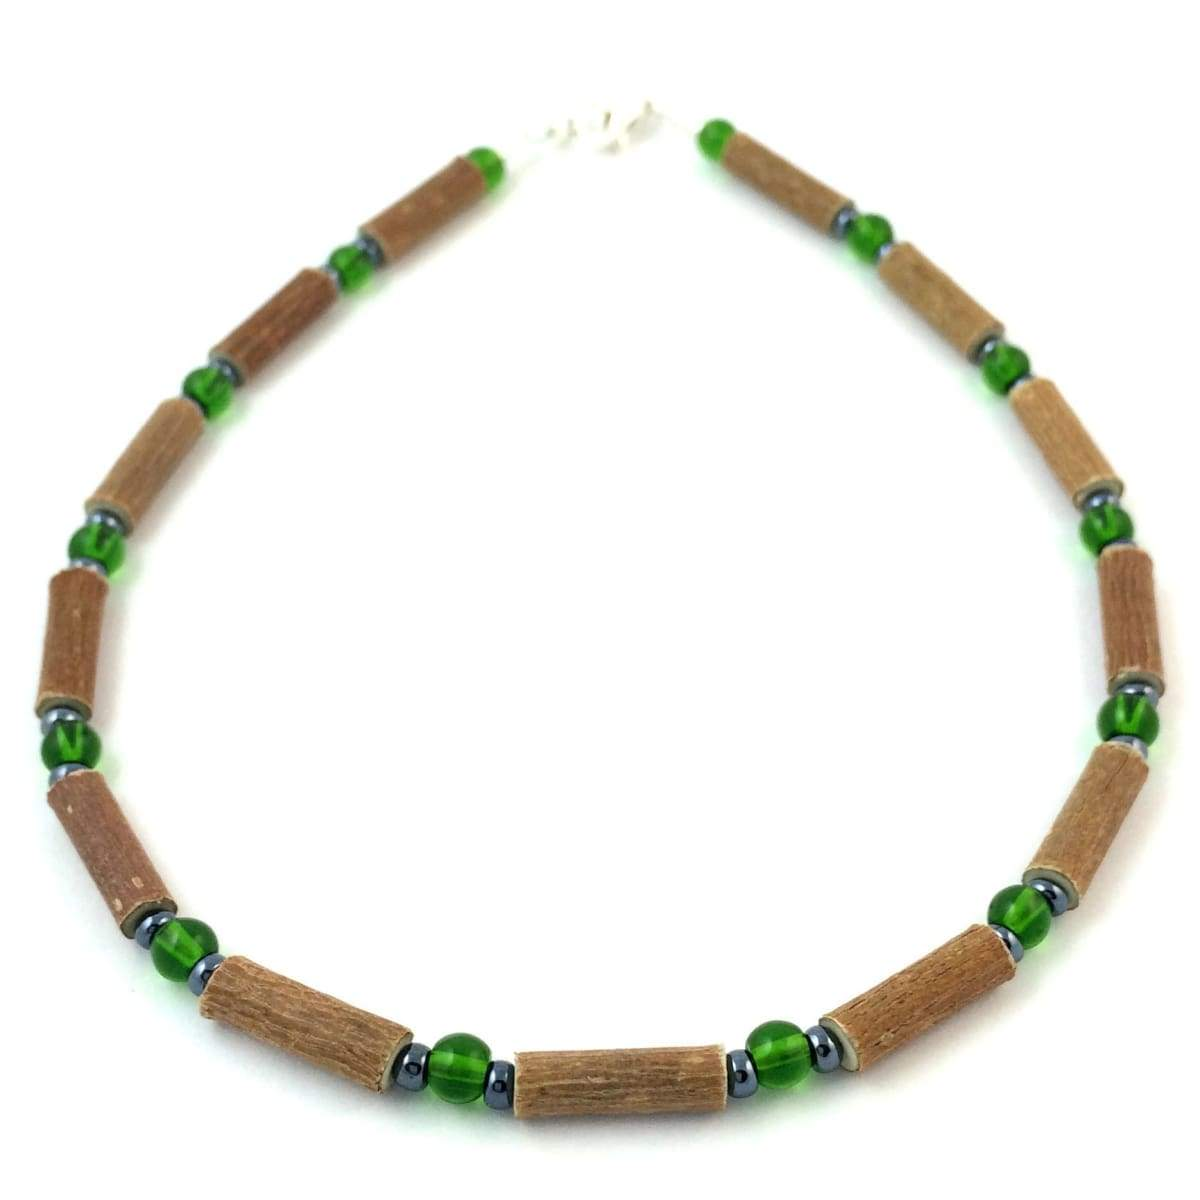 Hazelwood Green & Hematite - 11 Necklace - Lobster Claw Clasp - Hazelwood Jewelry